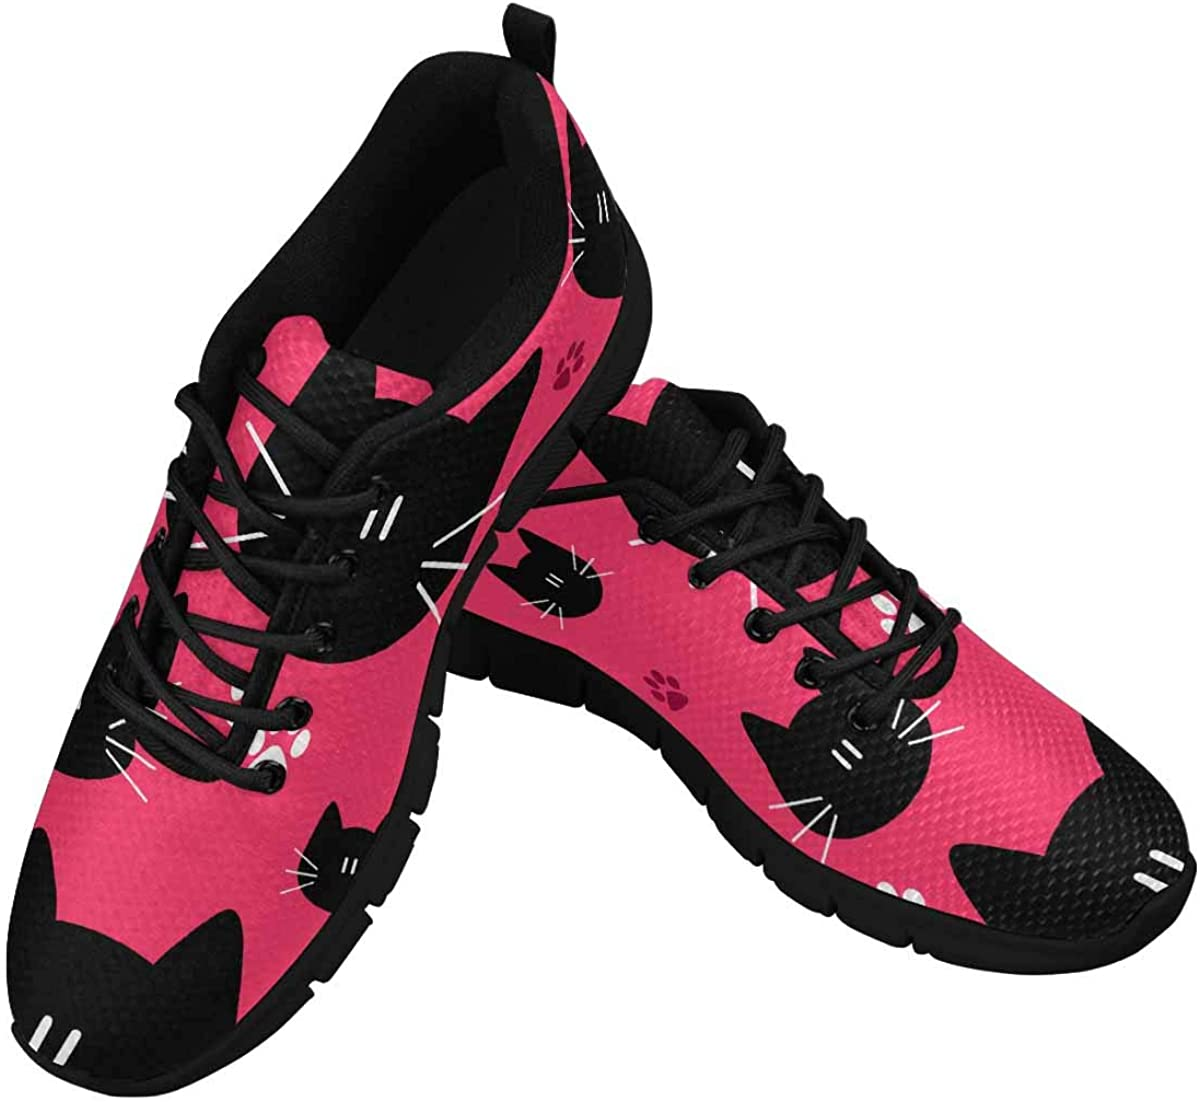 INTERESTPRINT Cute Pattern with Cat Faces Women's Sneaker Lace Up Running Comfort Sports Shoes